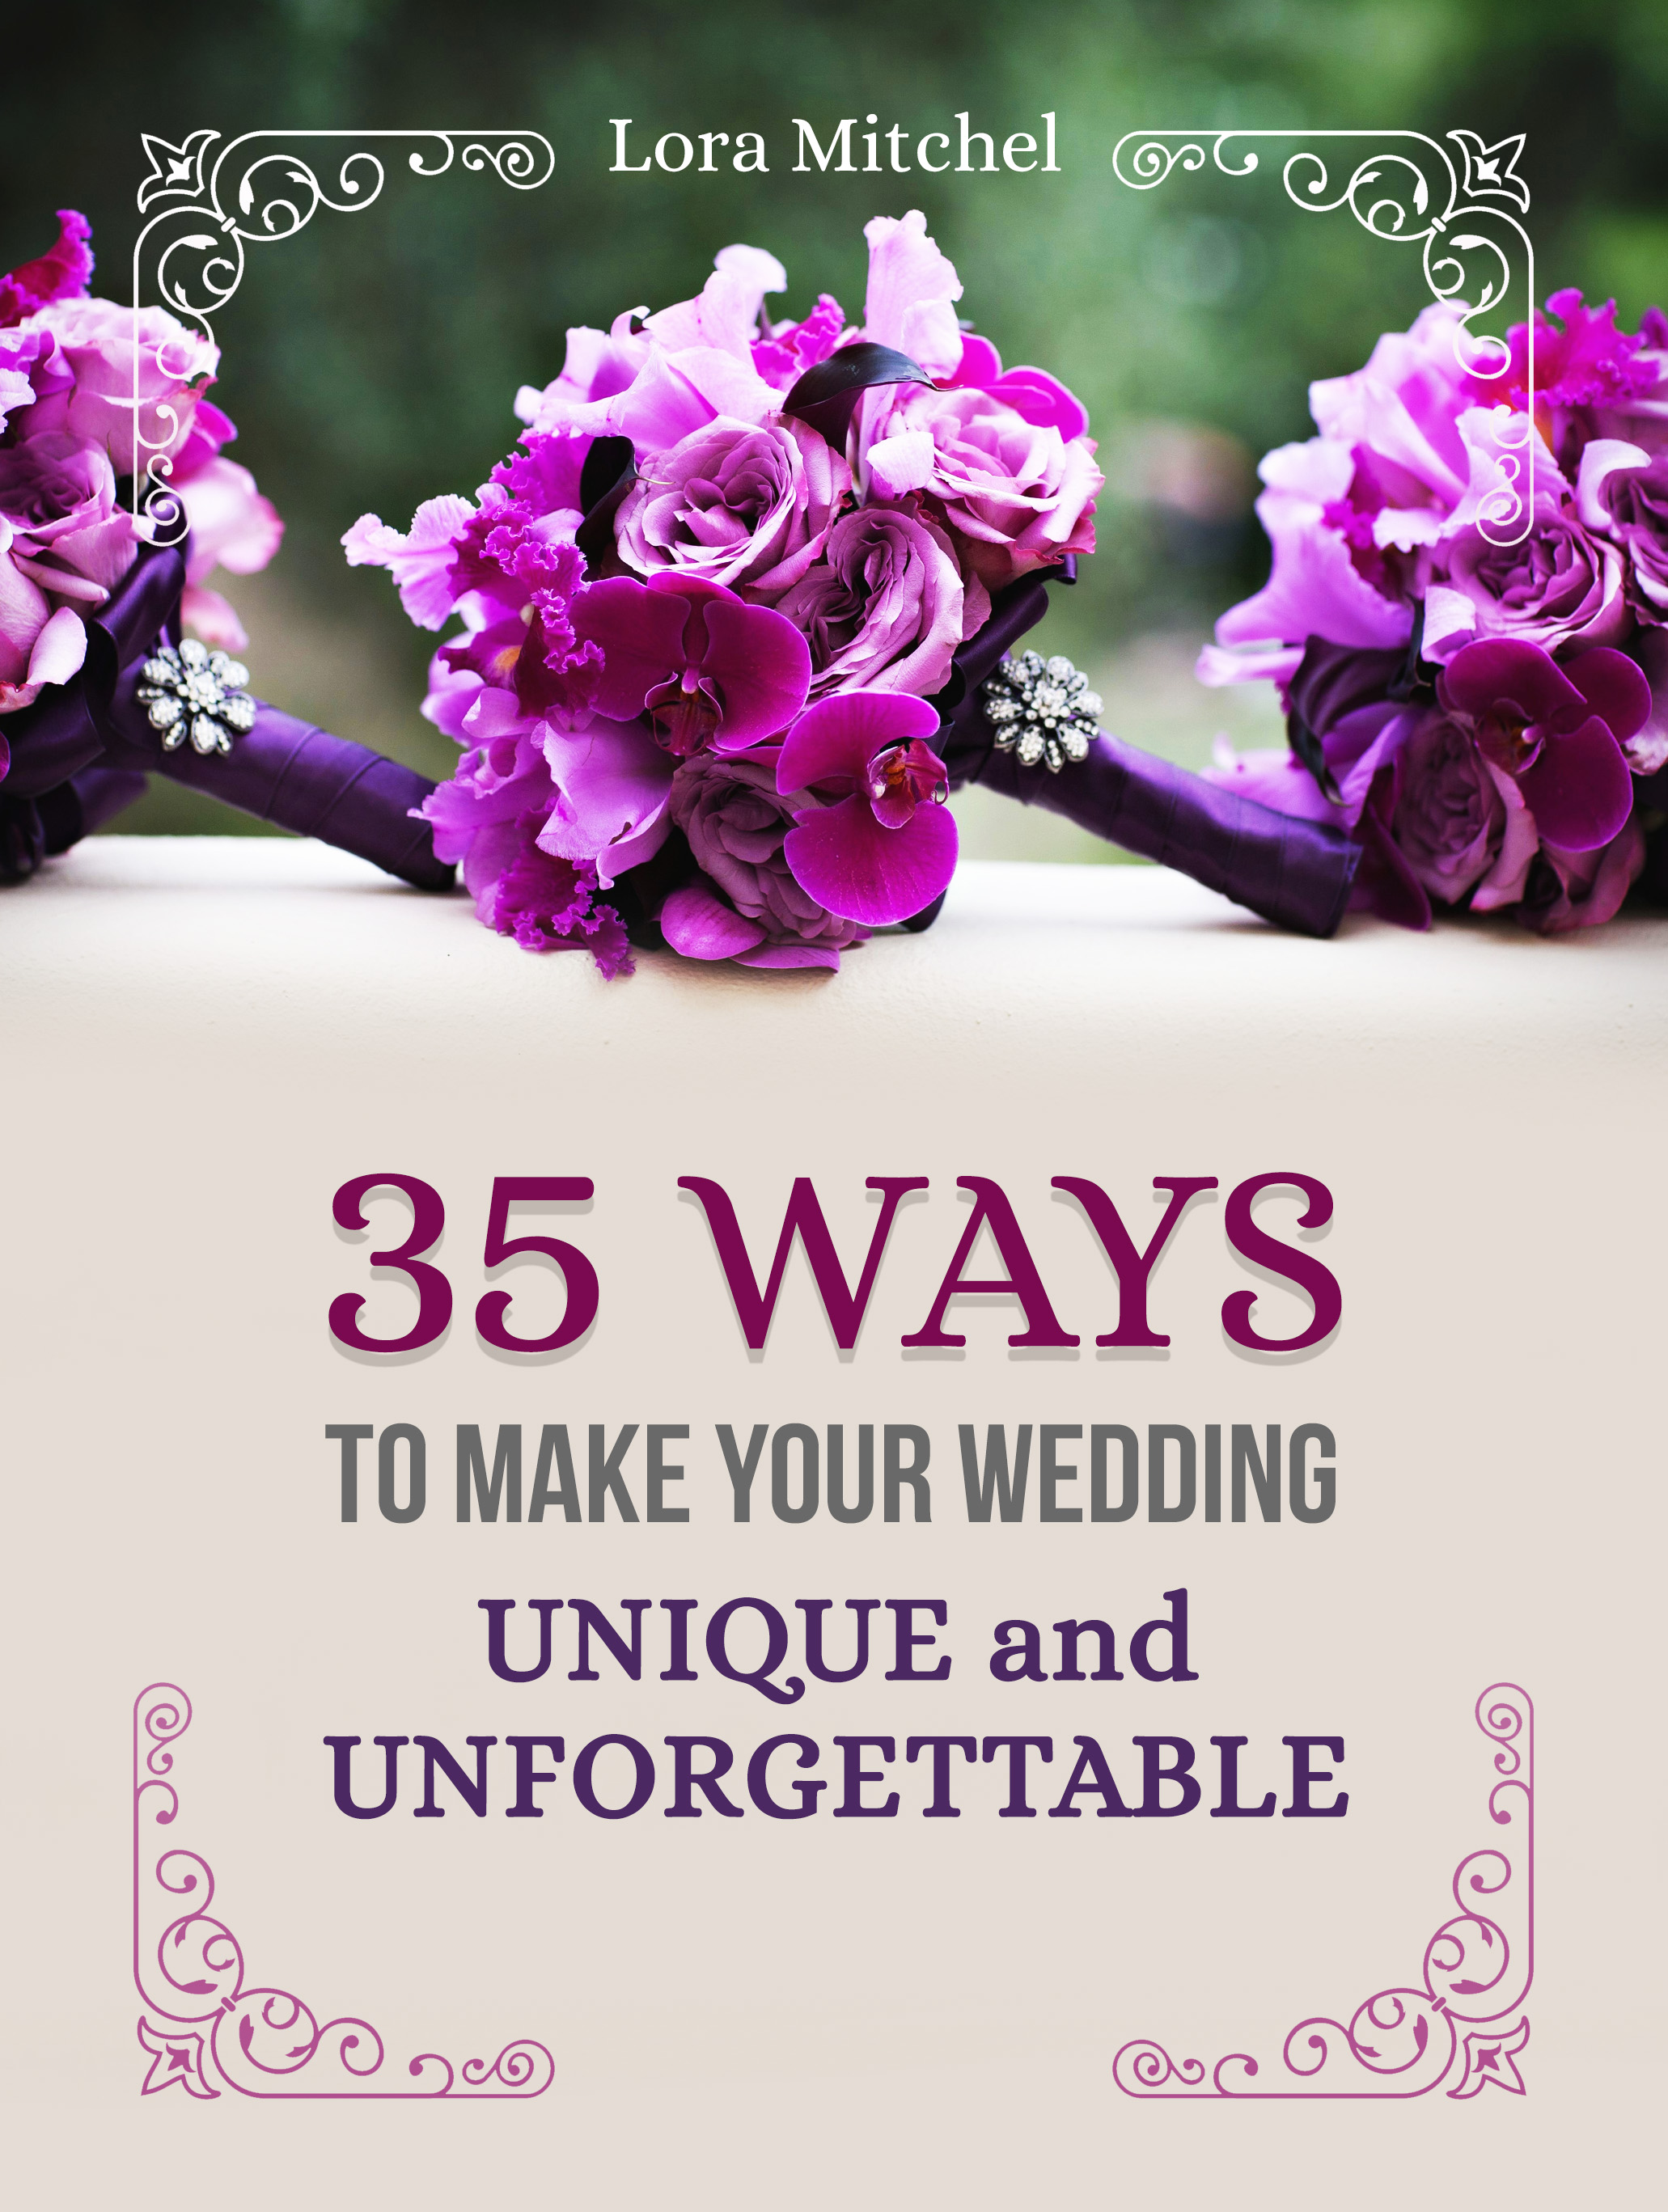 35 ways to make your wedding unique and unforgettable